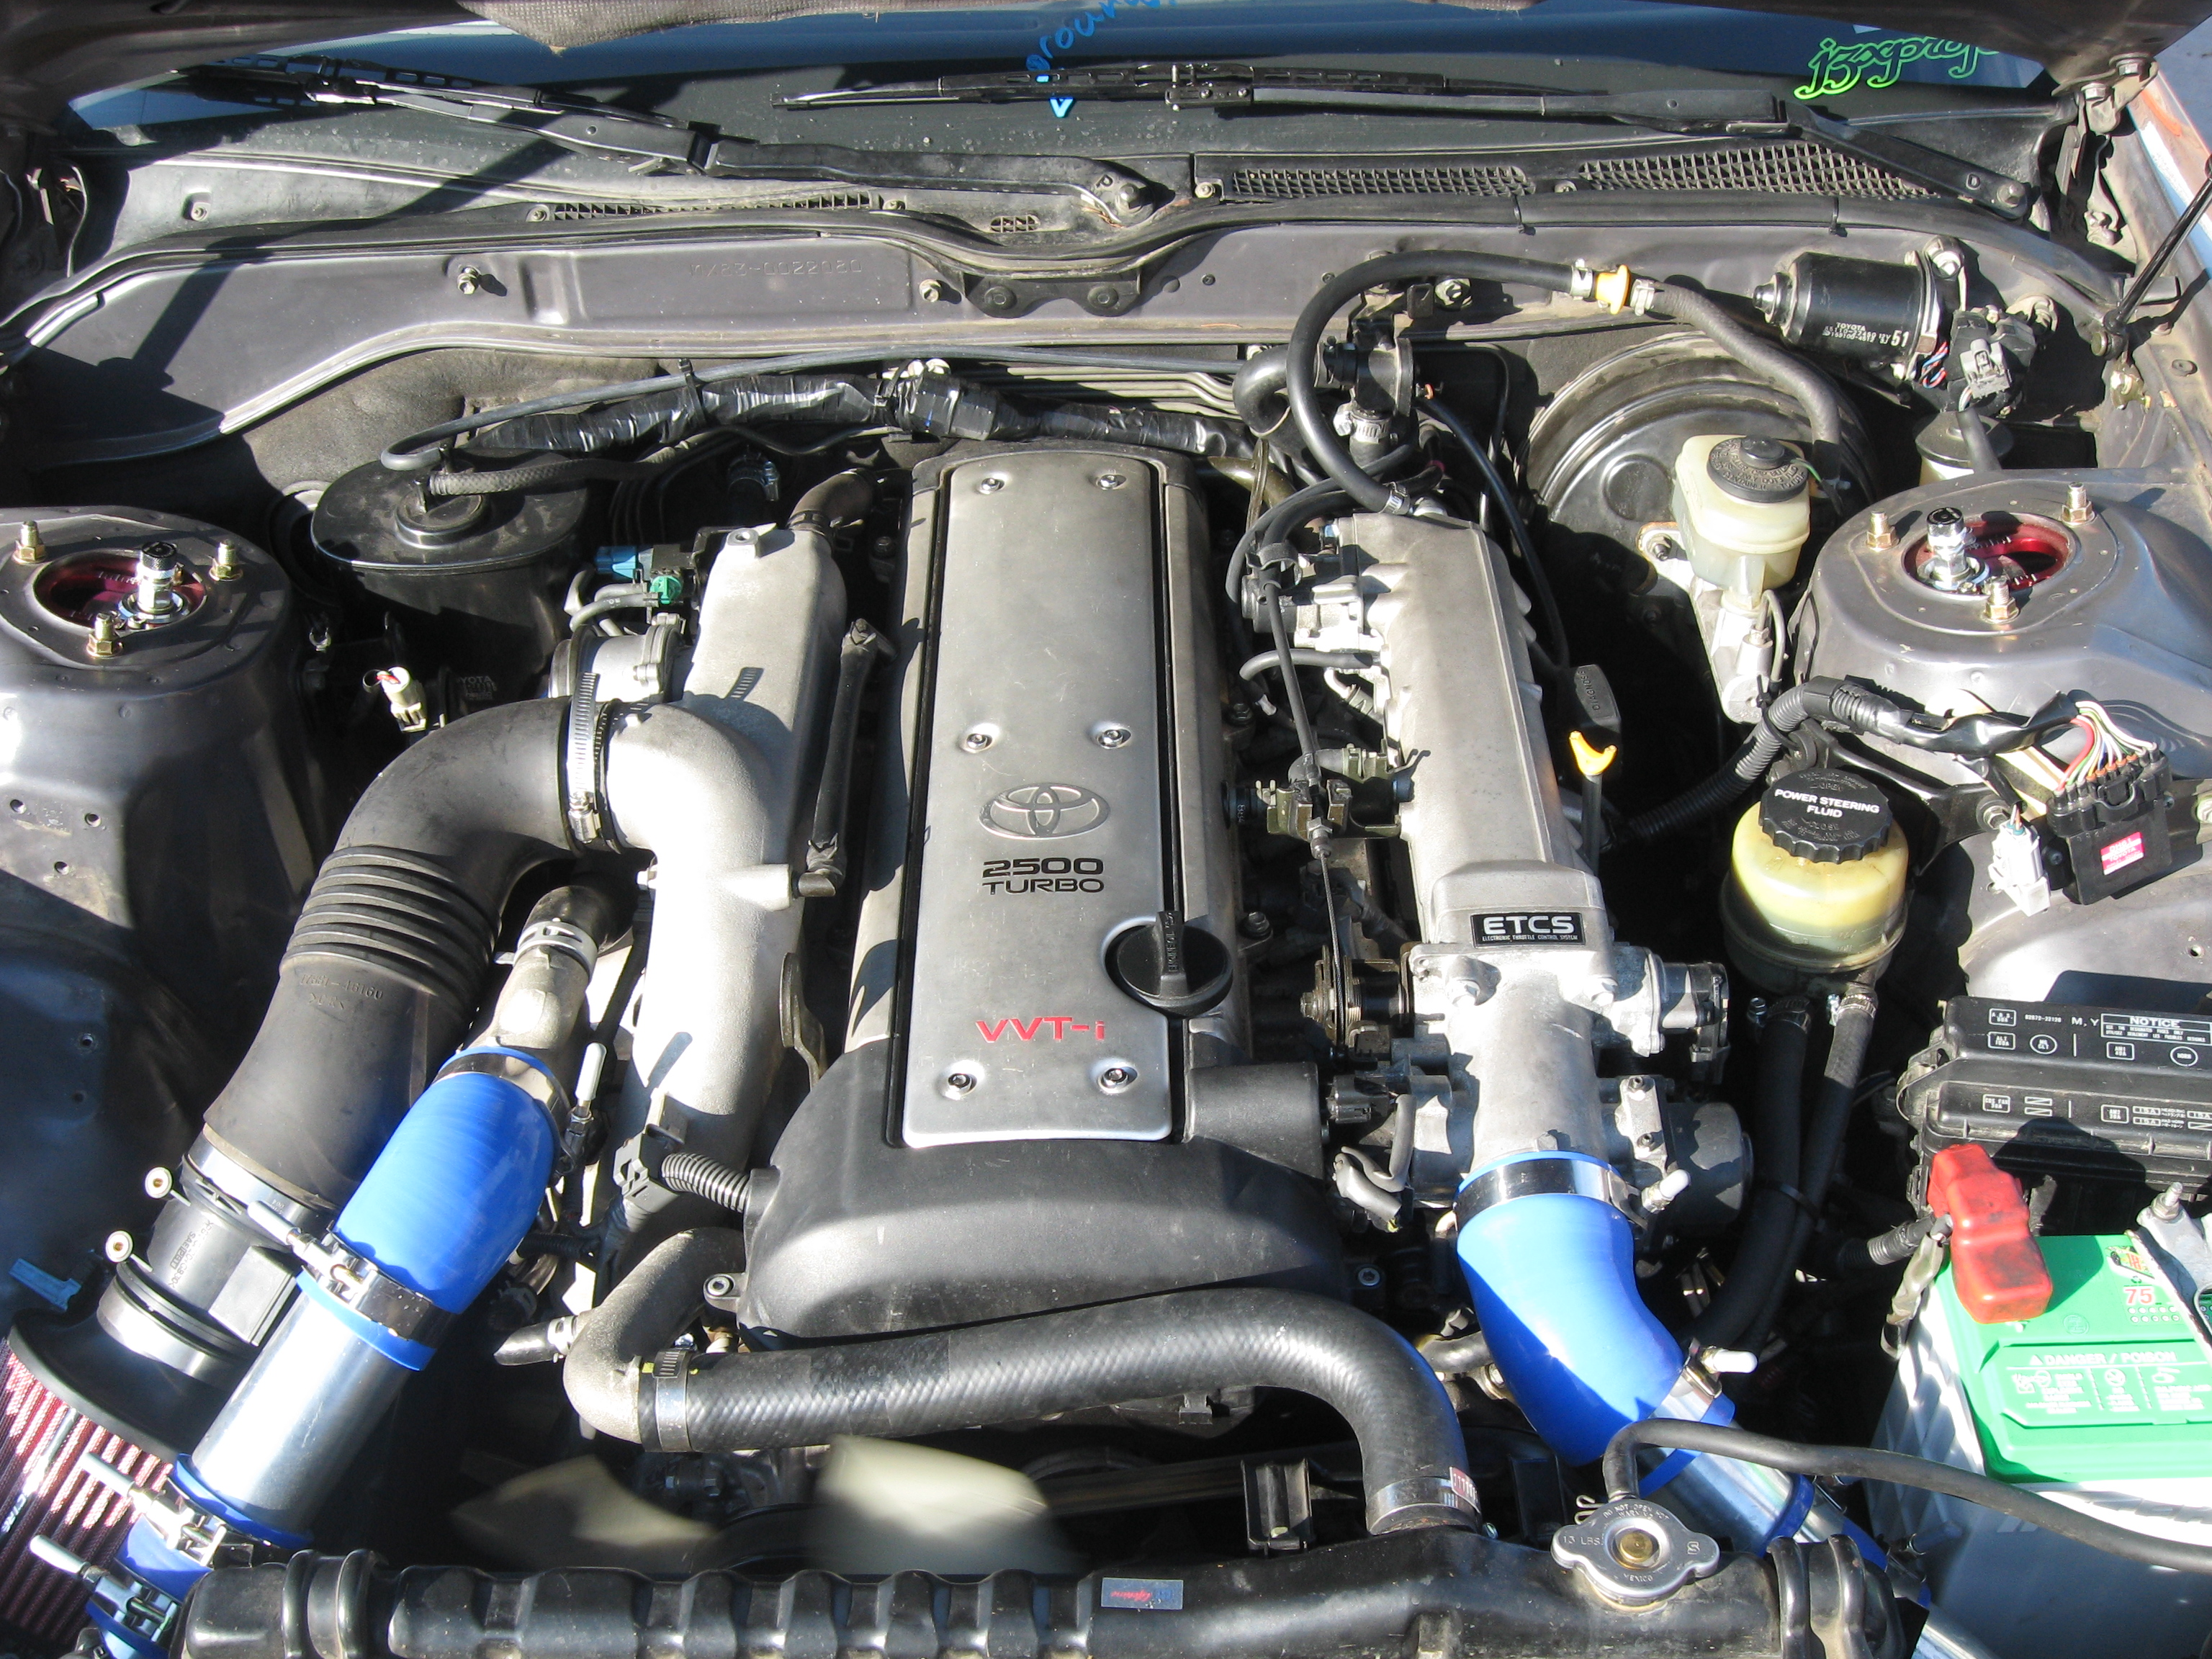 The 10 Best Engines Of Last 20 Years Ecotec 2 0 Turbo Gm Vvt 6 Toyota 2jz Gte